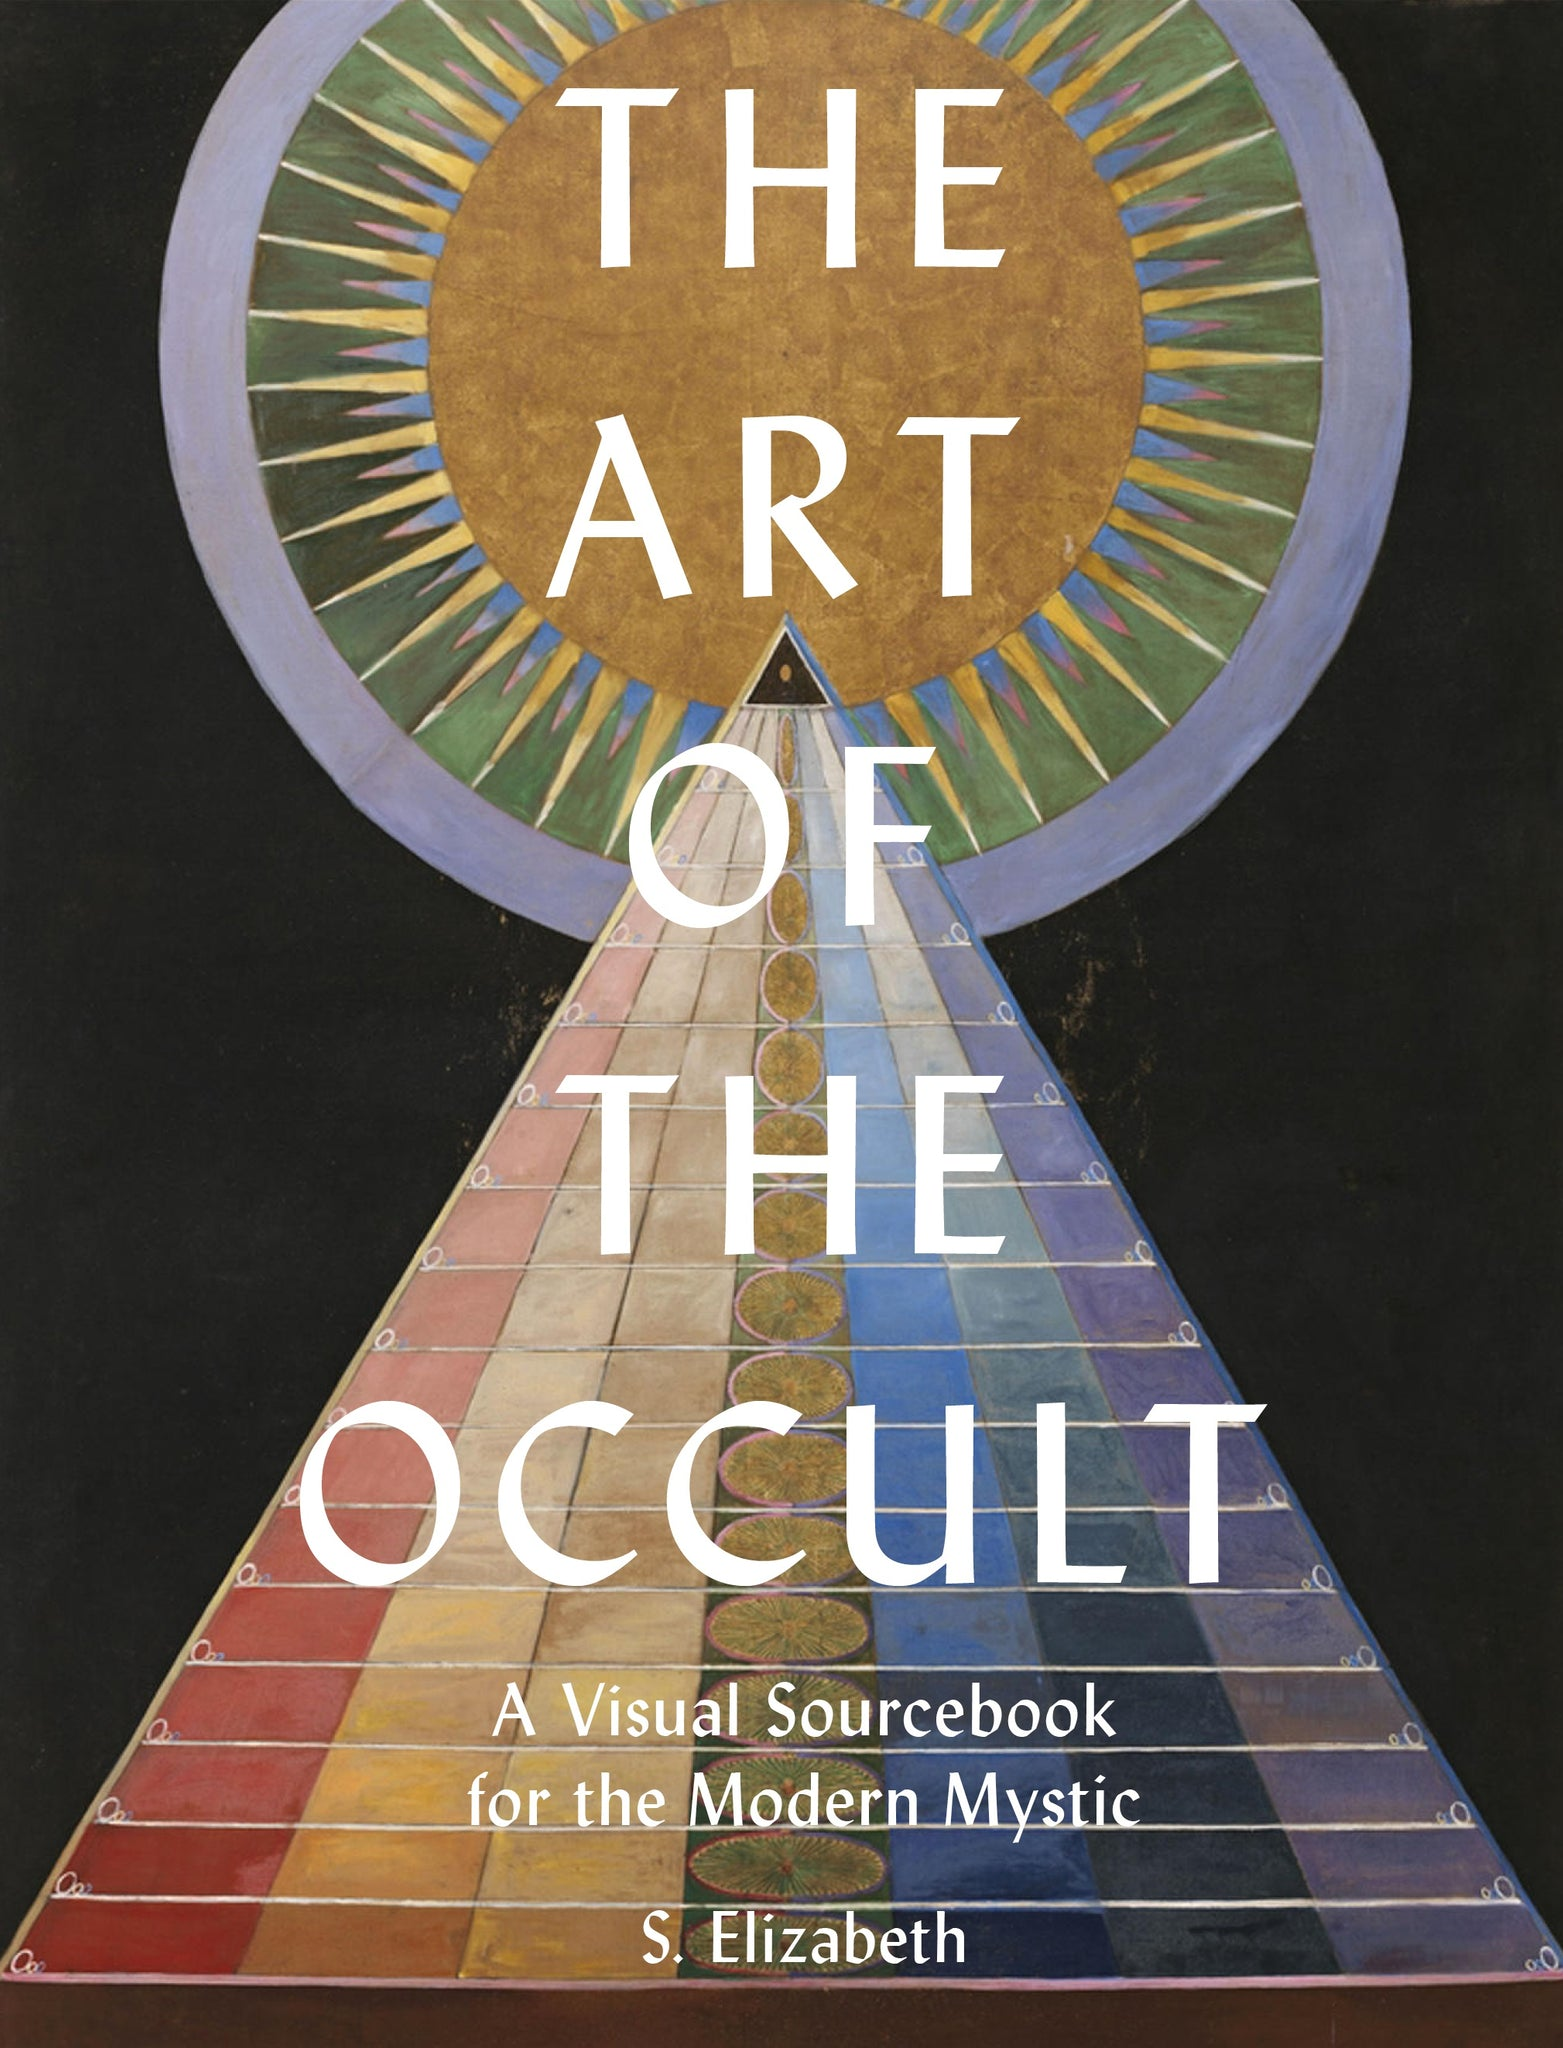 Art of the Occult: A Visual Sourcebook for the Modern Mystic